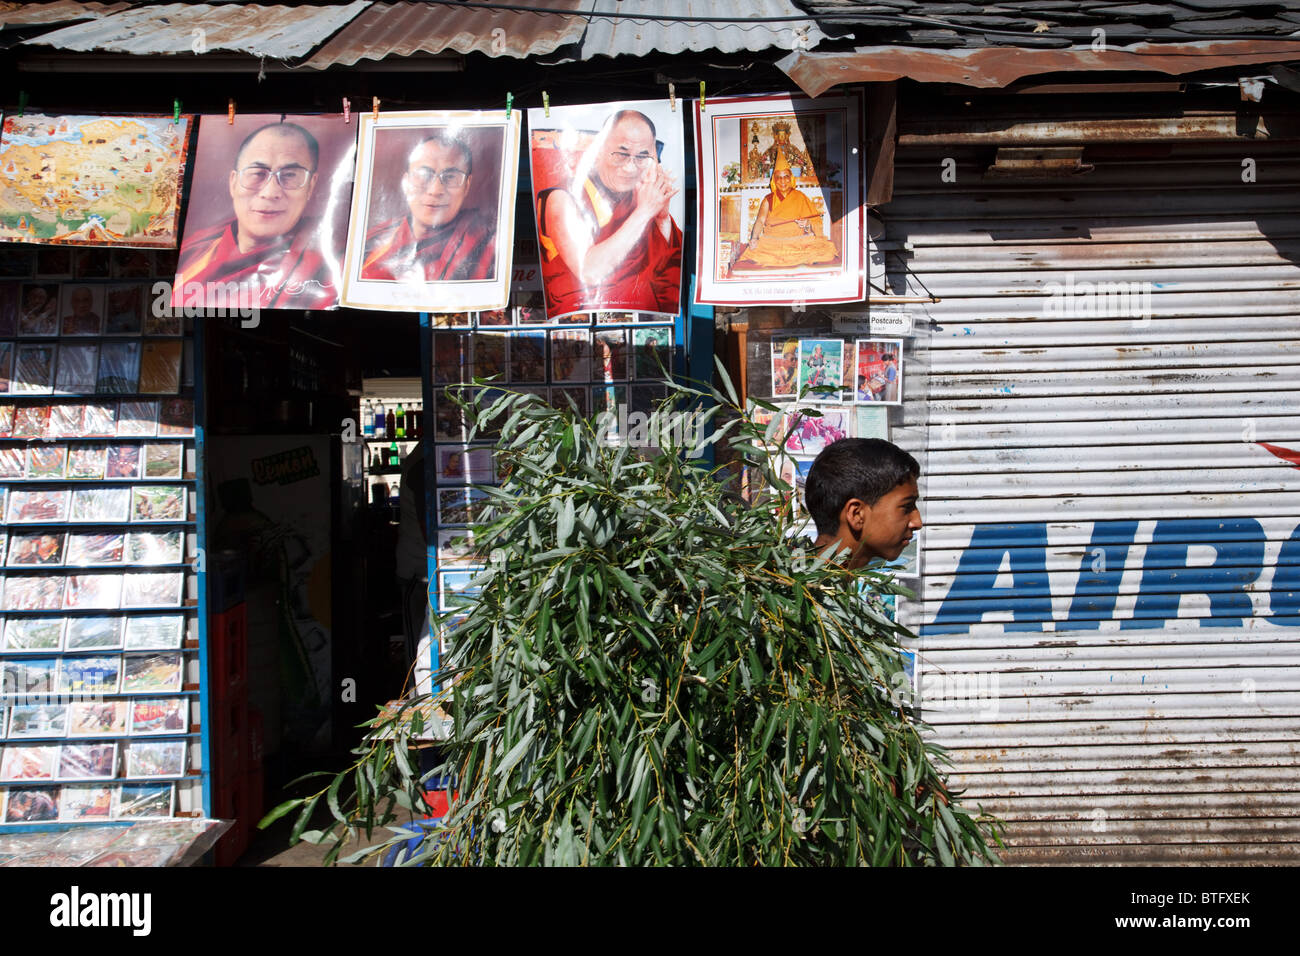 A boy carries a stack of tree branches in the street decorated with portraits of Dalai Lama of McLeod Ganj, India - Stock Image